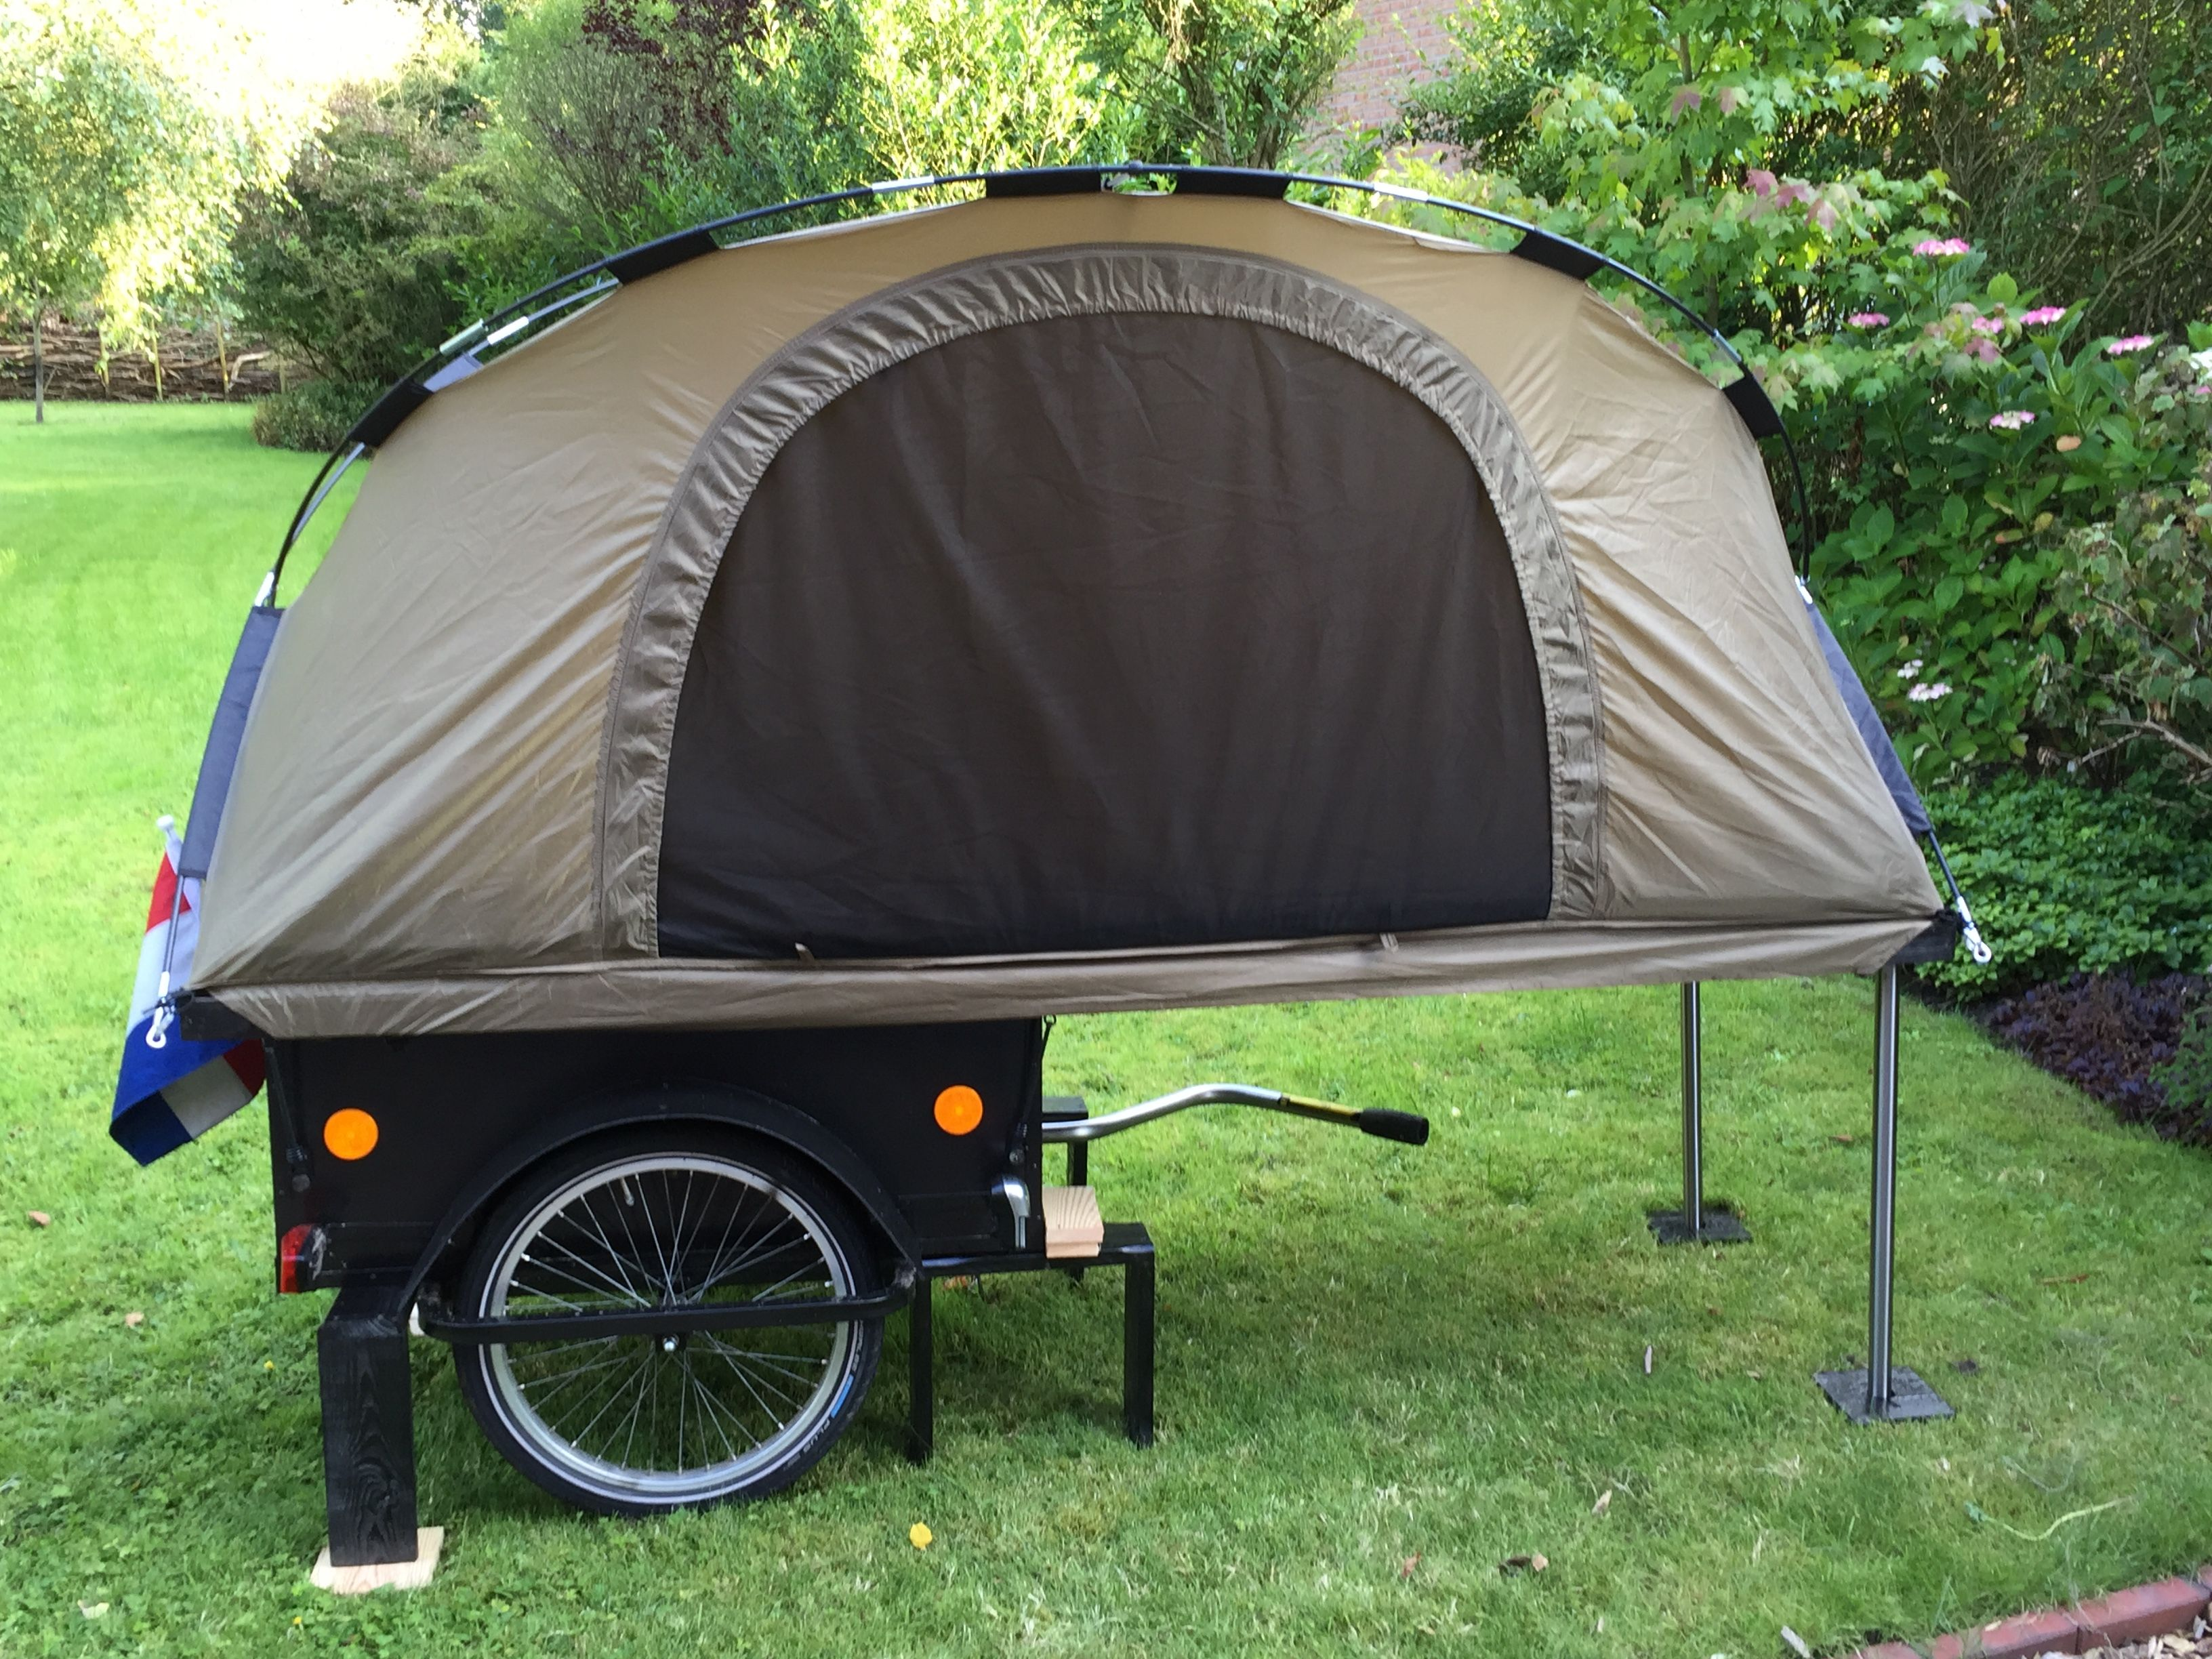 Bicycle Camper Trailer Tent - Year of Clean Water